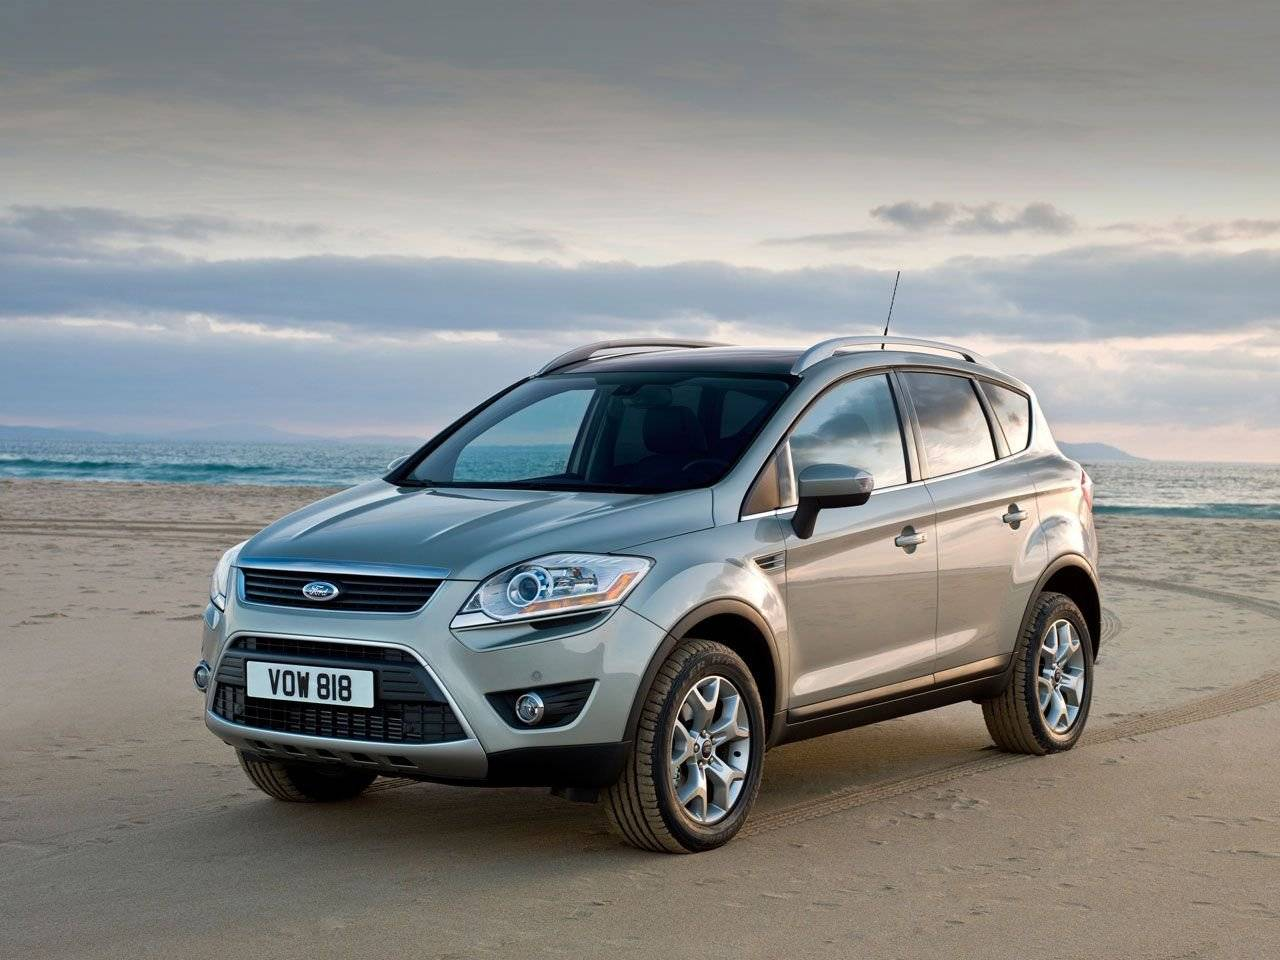 ford kuga ford s eerste europese suv autonieuws. Black Bedroom Furniture Sets. Home Design Ideas